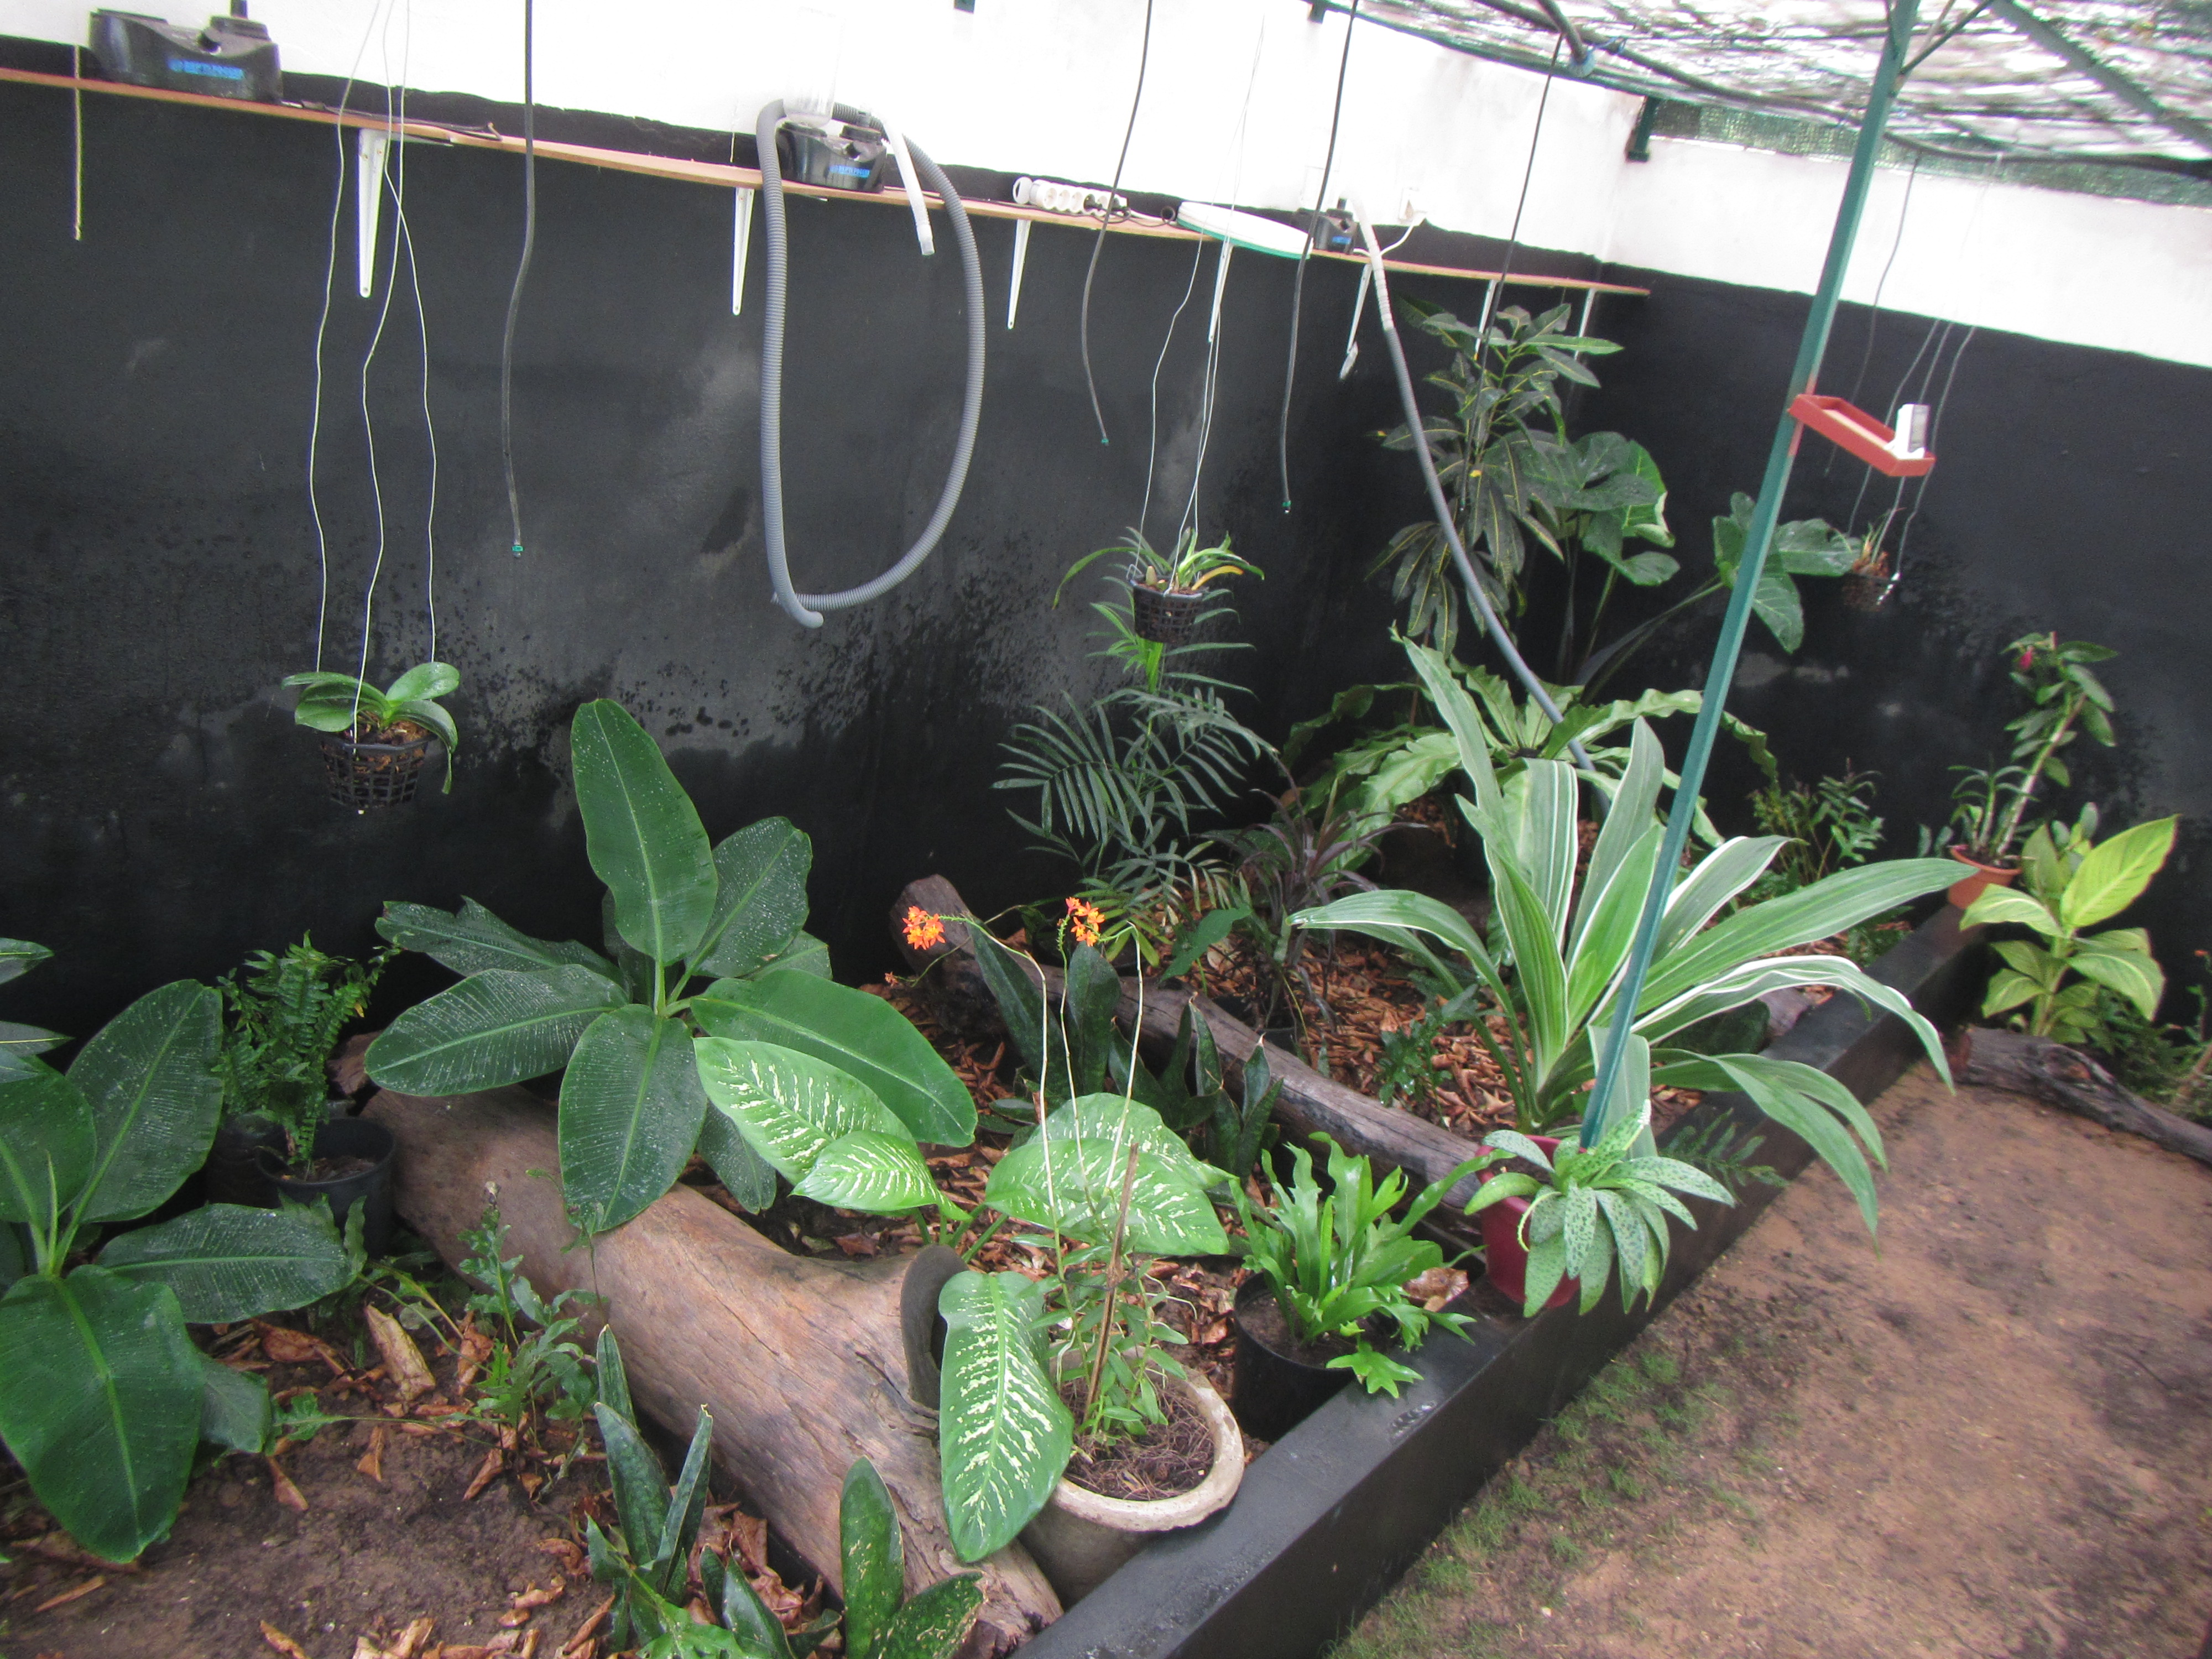 Inside the Rhodin Center greenhouse, area where we keep African hingeback forest species, genus Kinixys